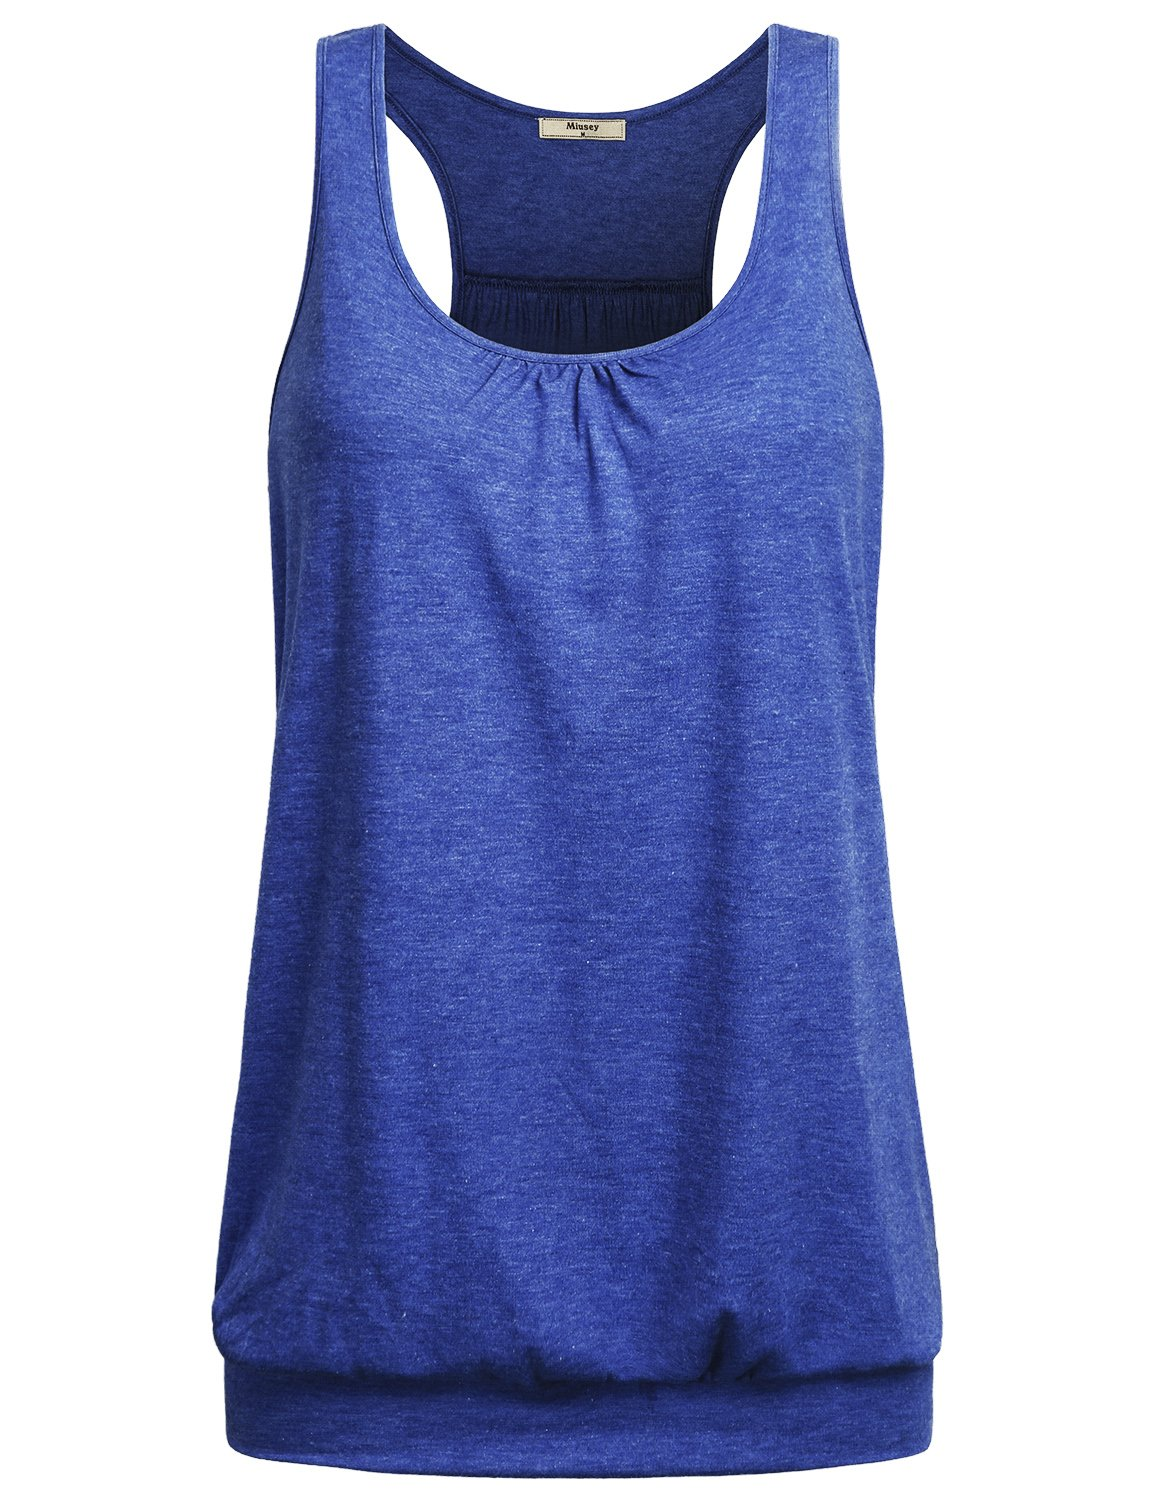 Miusey Knit Shirts for Women, Ladies Sleeveless Scoop-Neck Flowy Racerback Soft Summer Sports Cool Workout Yoga Tank Top Walking Loose Lightweight Yoga Gym Activewear Sports Cool Front Pleat Blue X